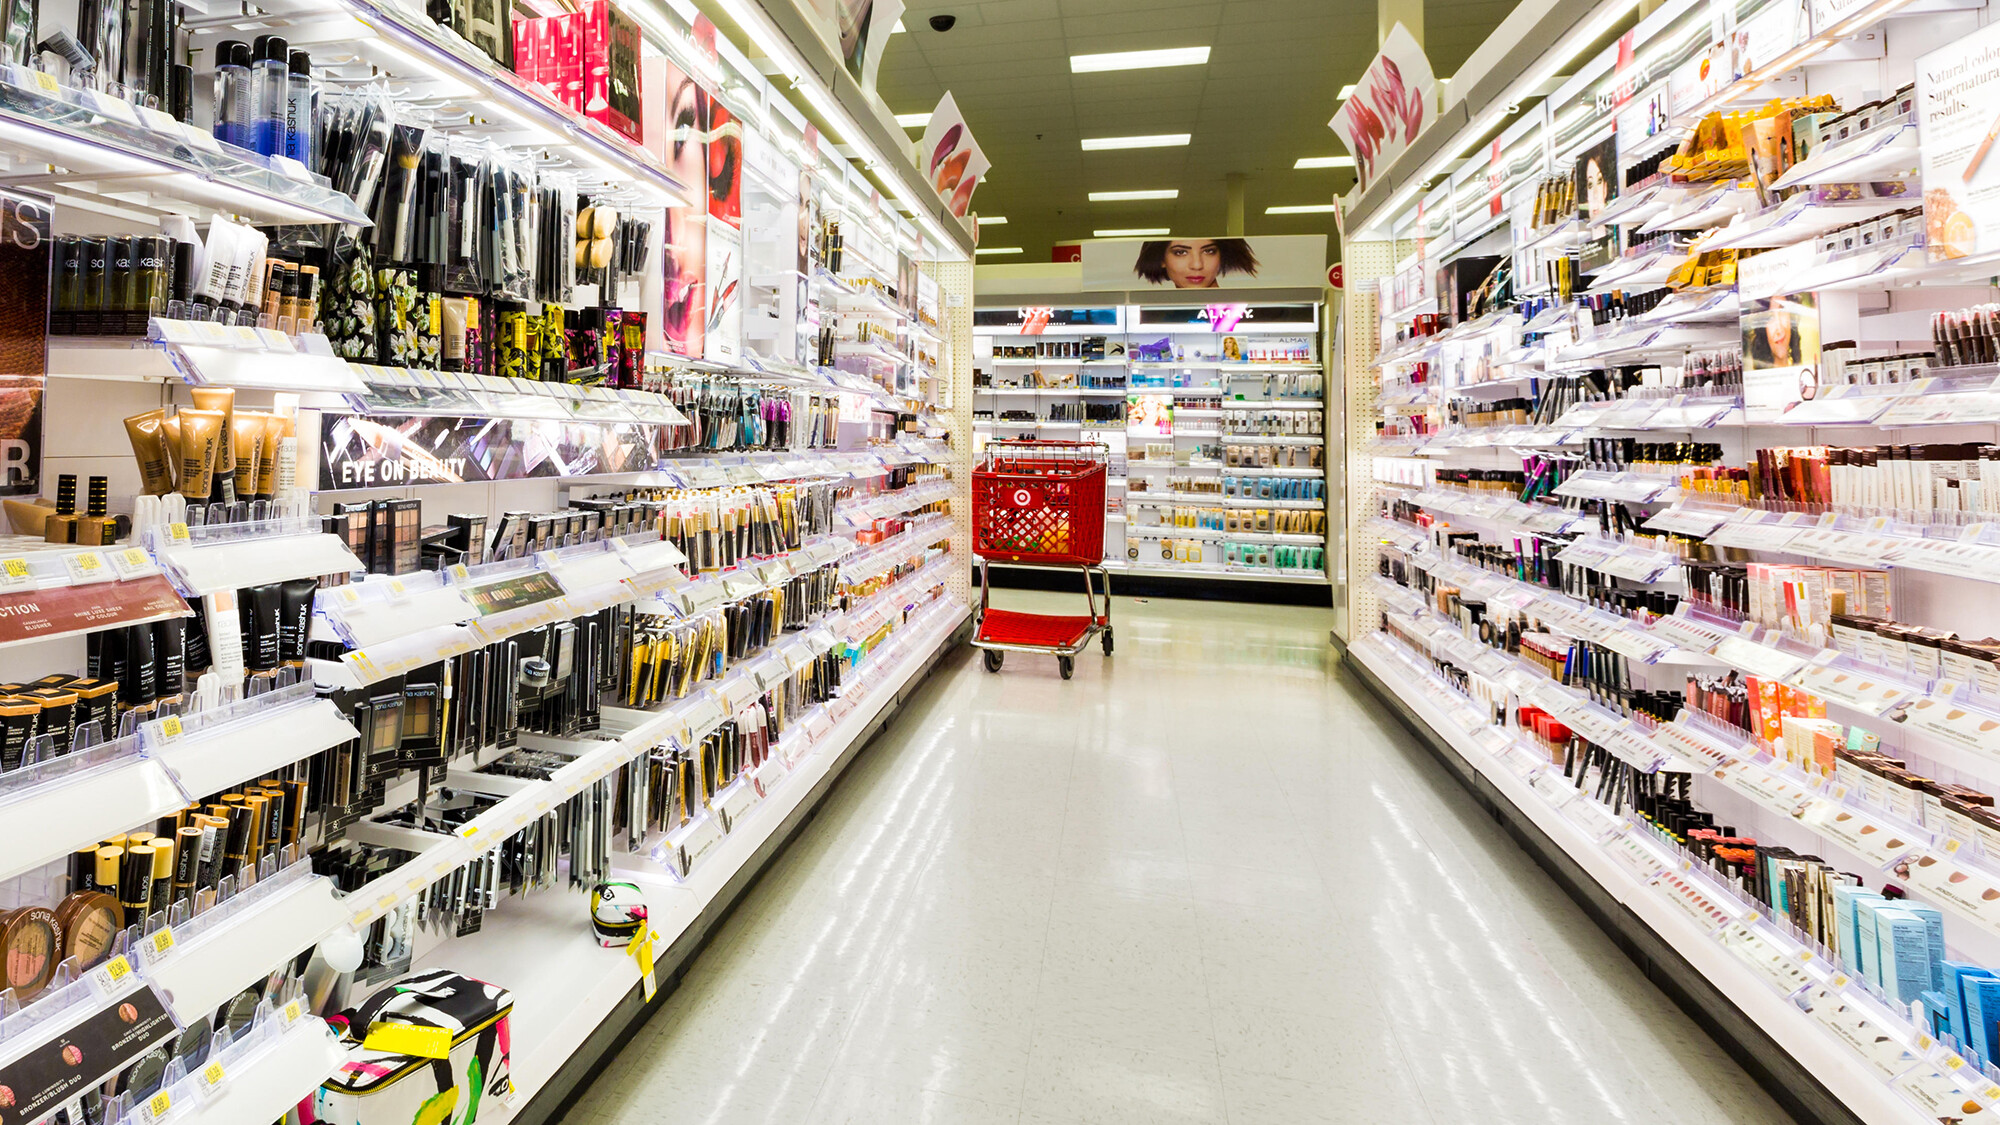 Products in your medicine cabinet may soon be getting more expensive